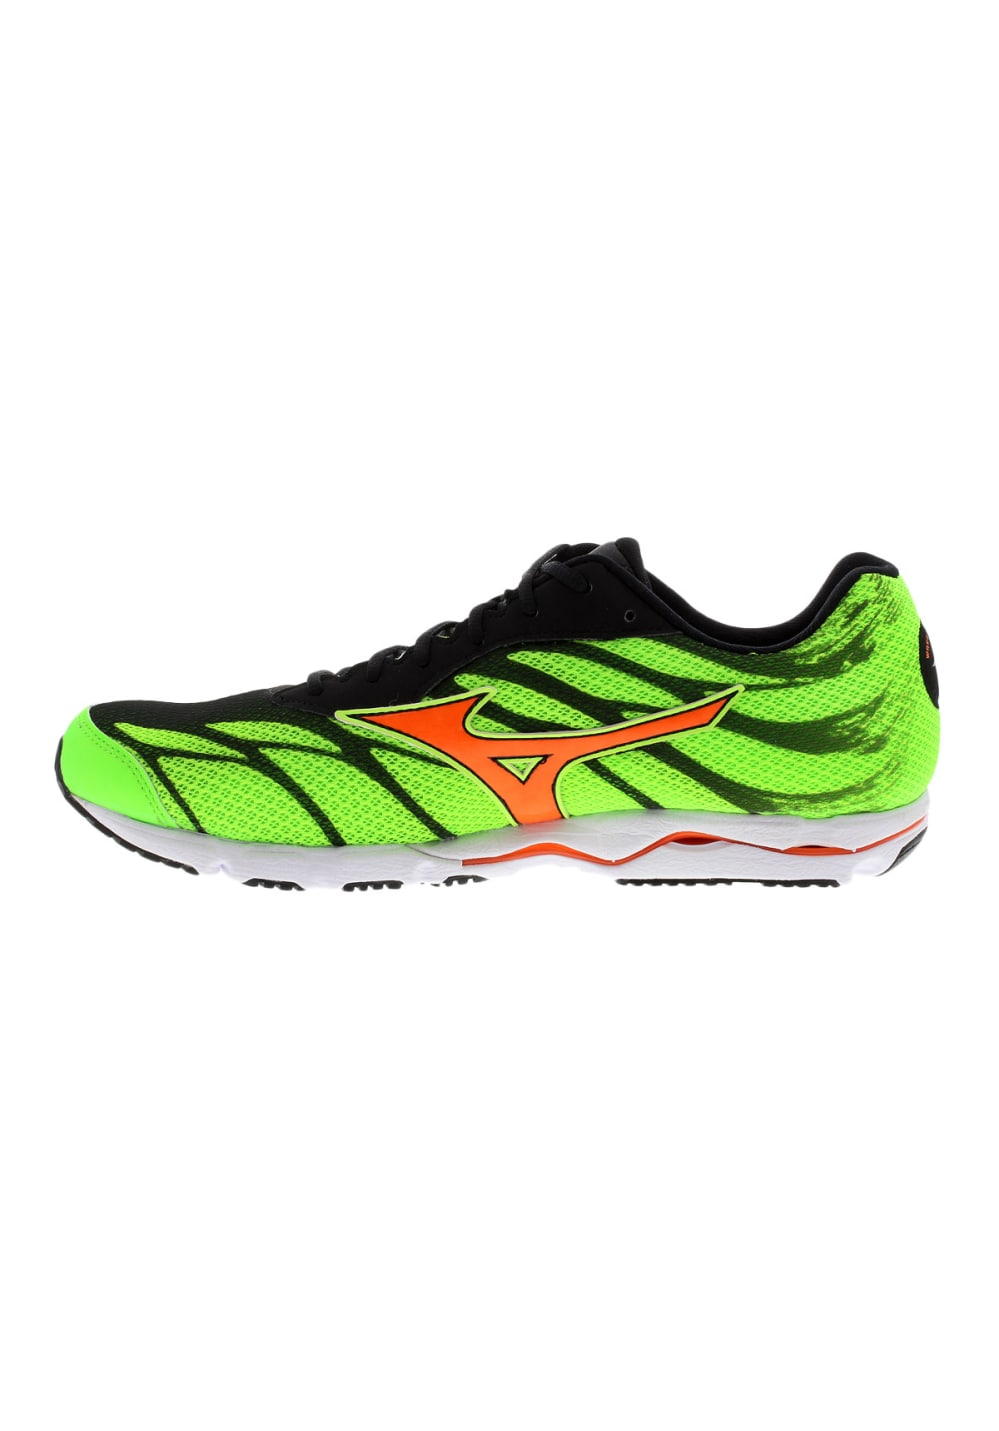 sports shoes cc423 856f2 Mizuno Wave Hitogami 3 - Running shoes for Men - Black